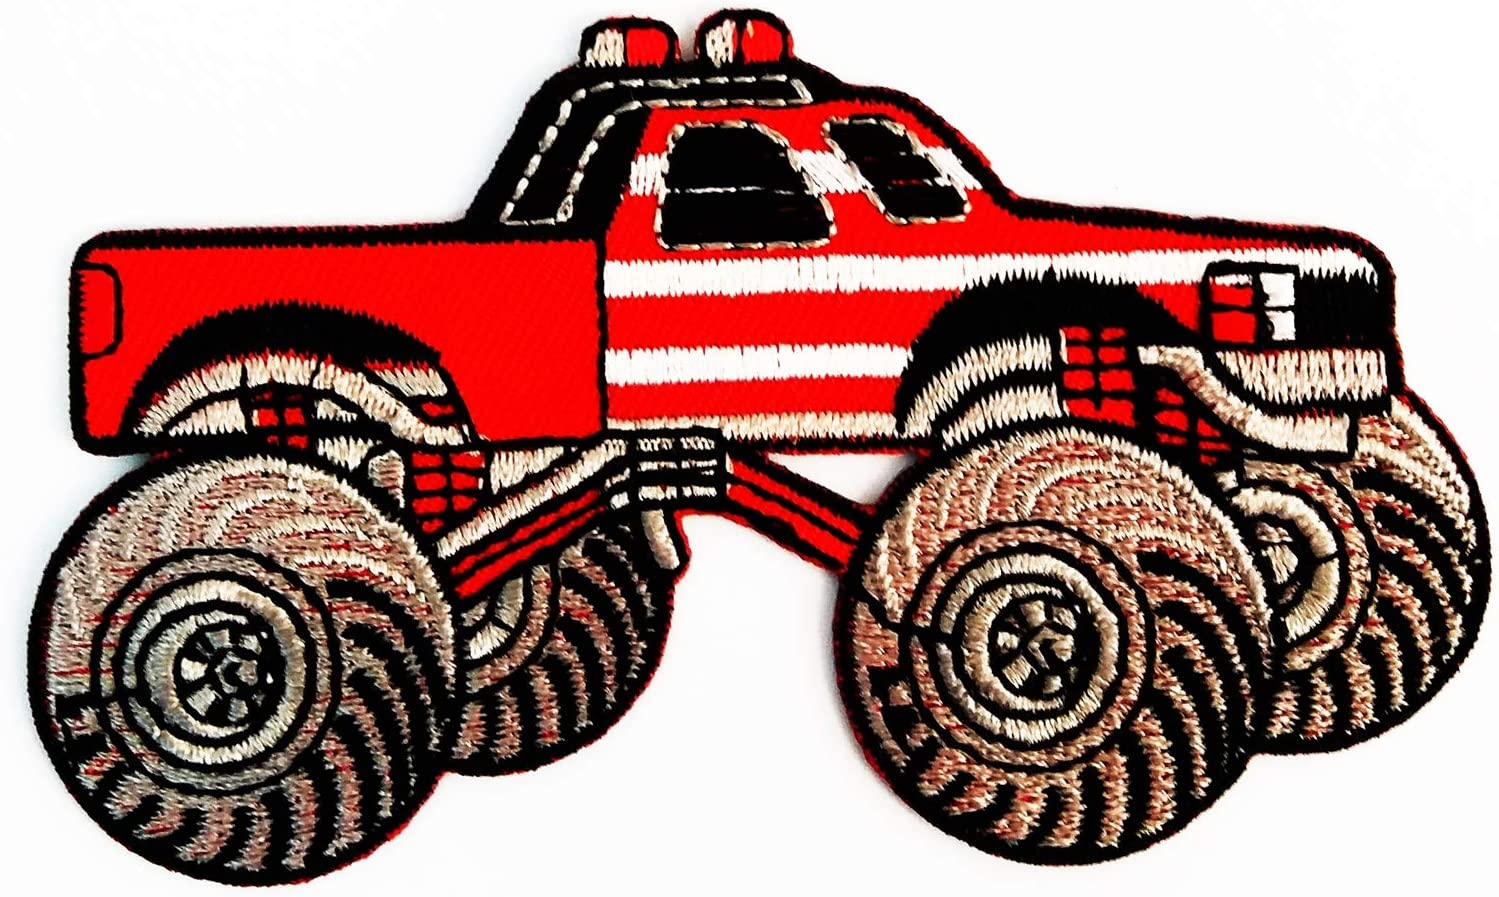 Amazon Com Monster Car Truck Red Patch Pickup Auto Racing Movie Cartoon 2 2x3 7 In Megadee Patch Badge Motogp Racing Vintage Classic Biker Racer Club Sew Iron On Logo Embroidered Car Cartoon 027 Arts